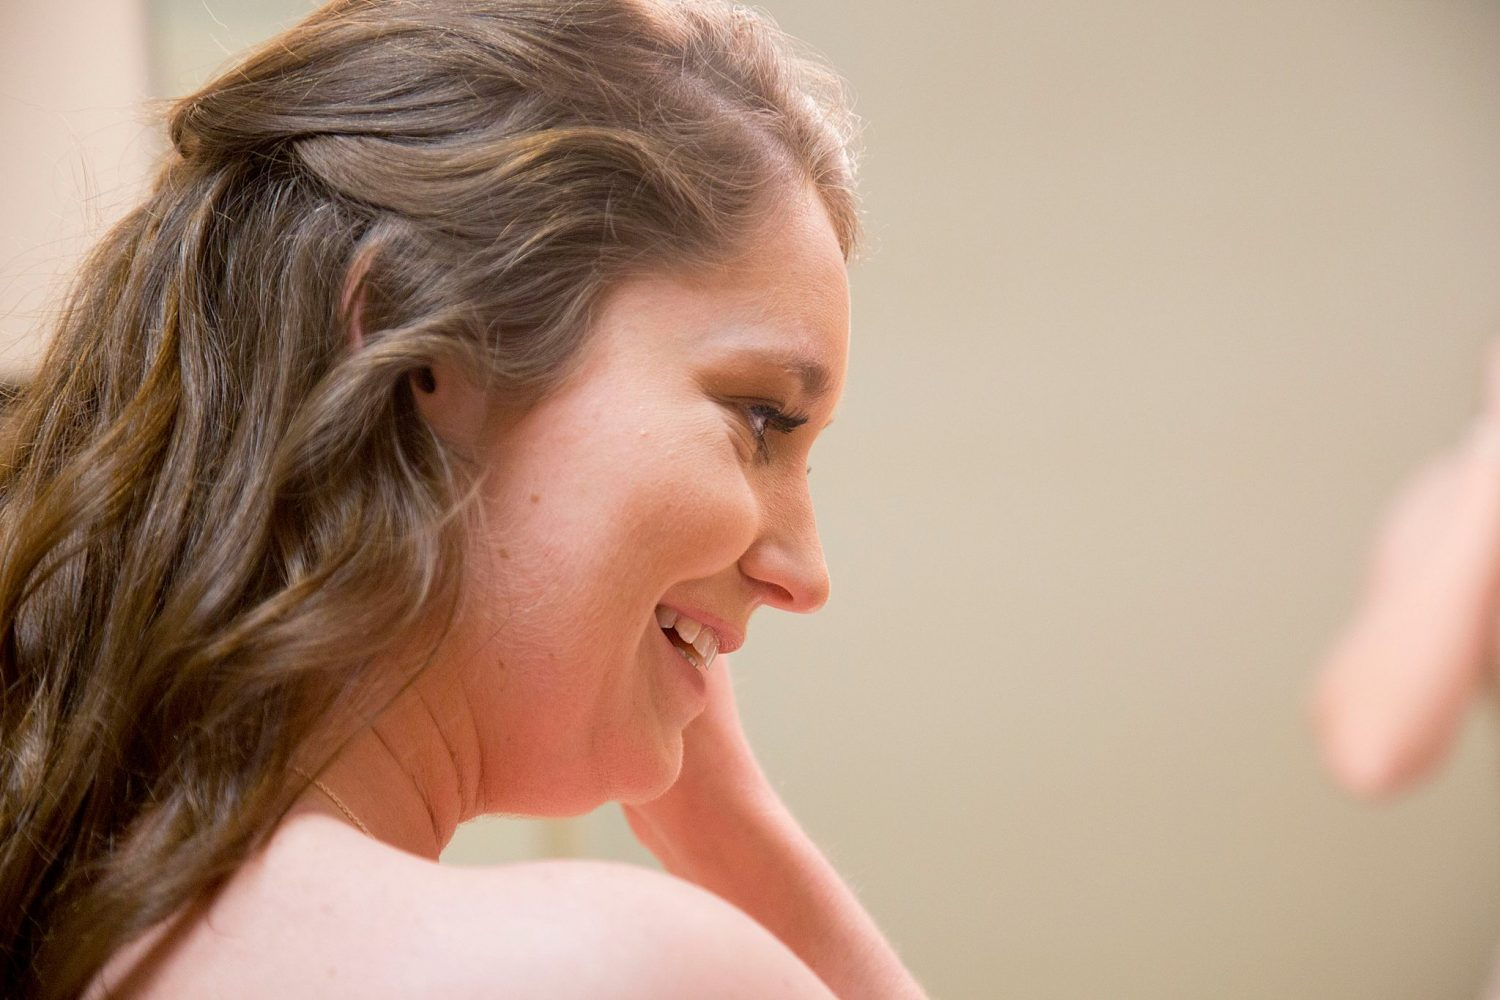 Bride getting ready for her wedding, putting in her earring.